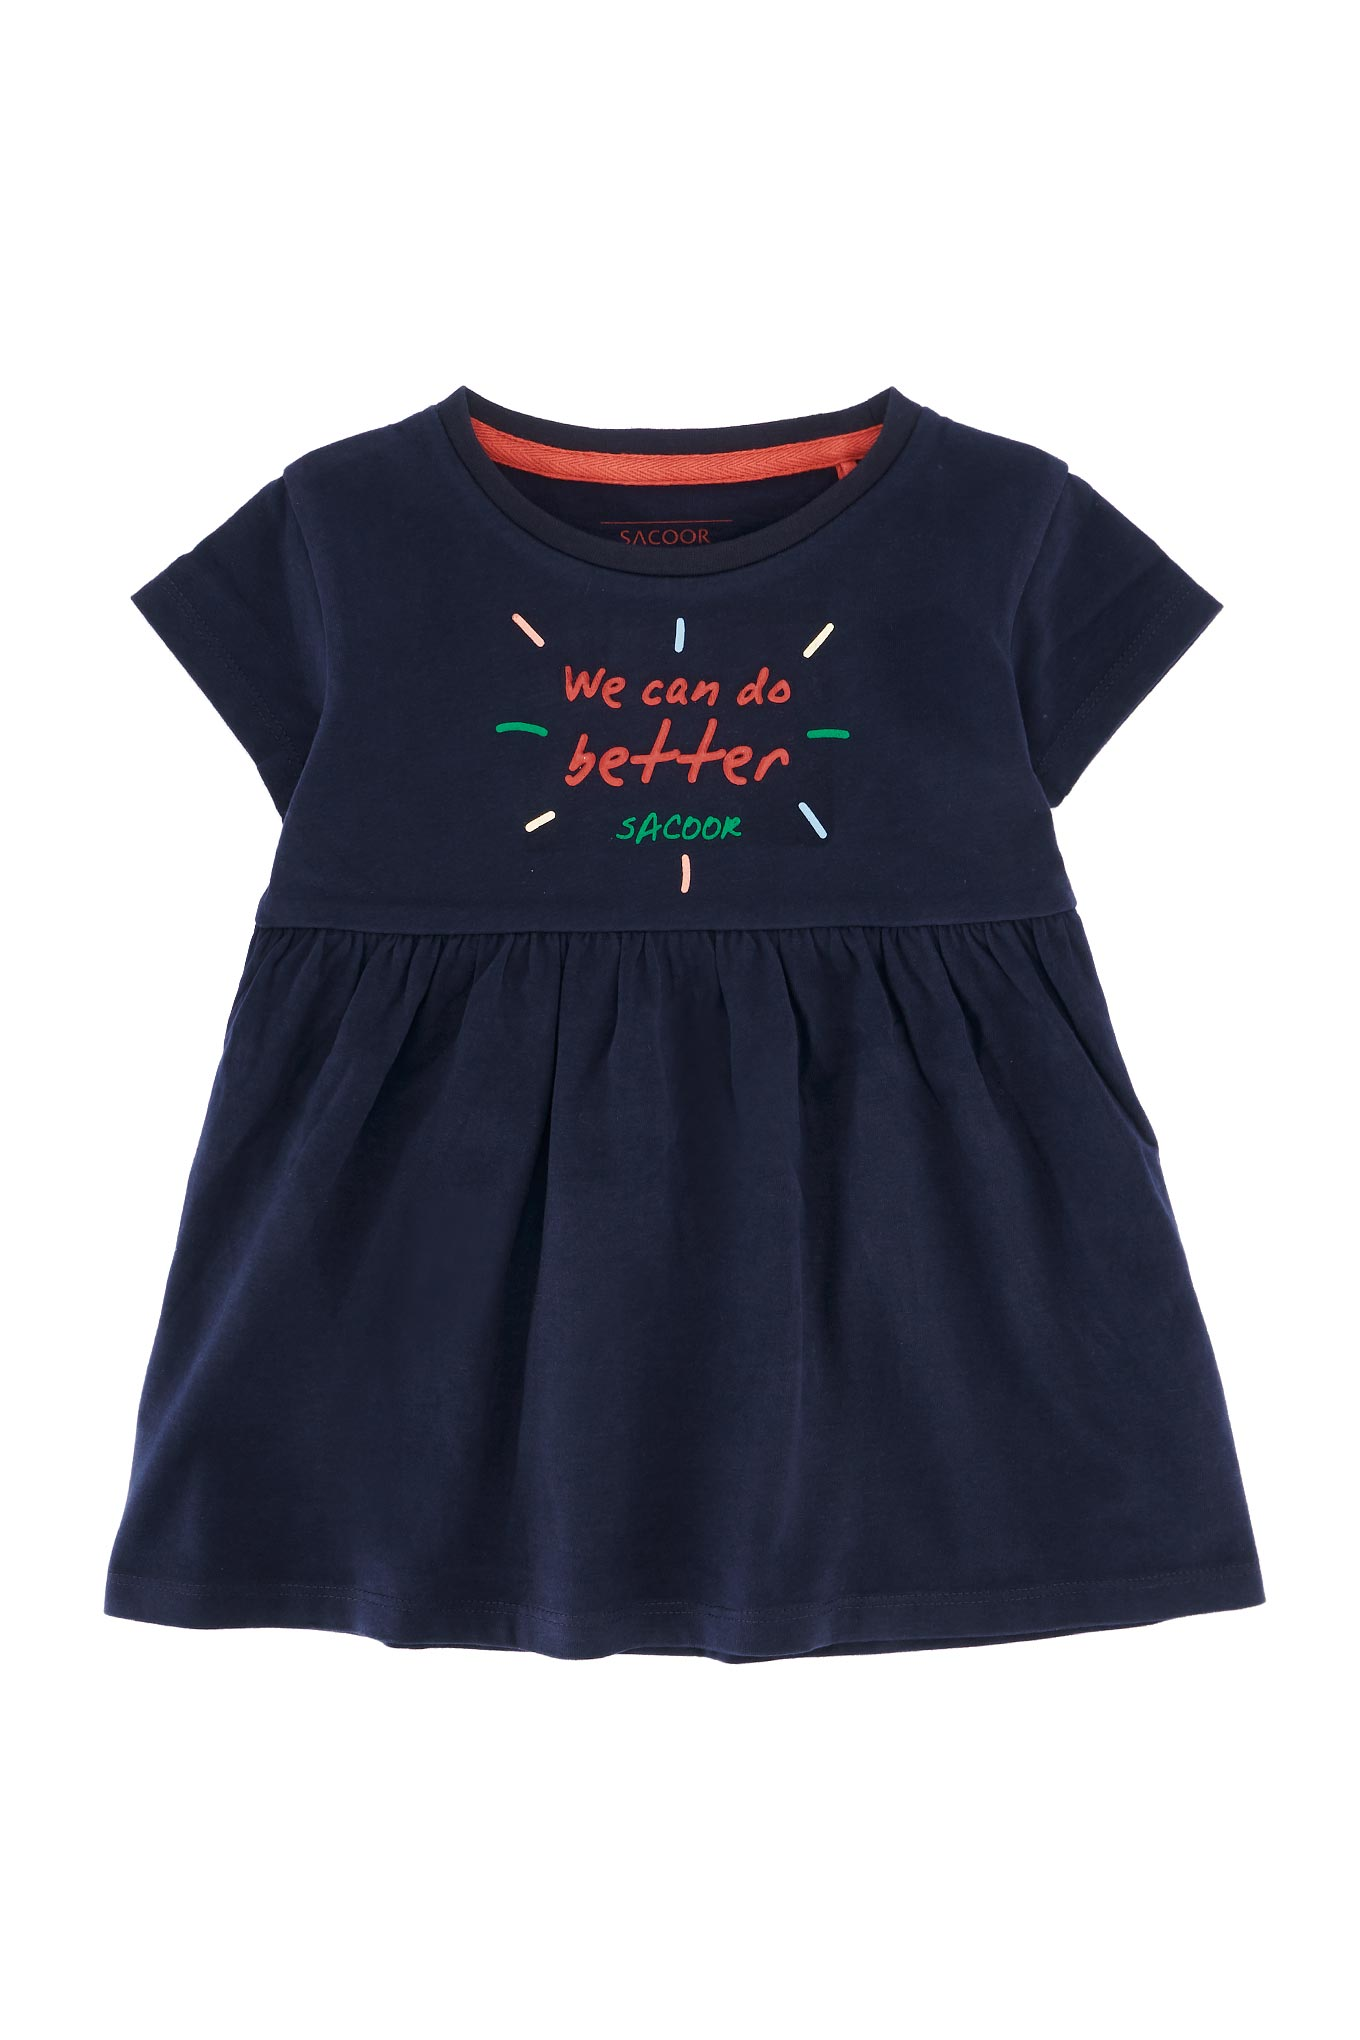 T-Shirt Dark Blue Sport Girl